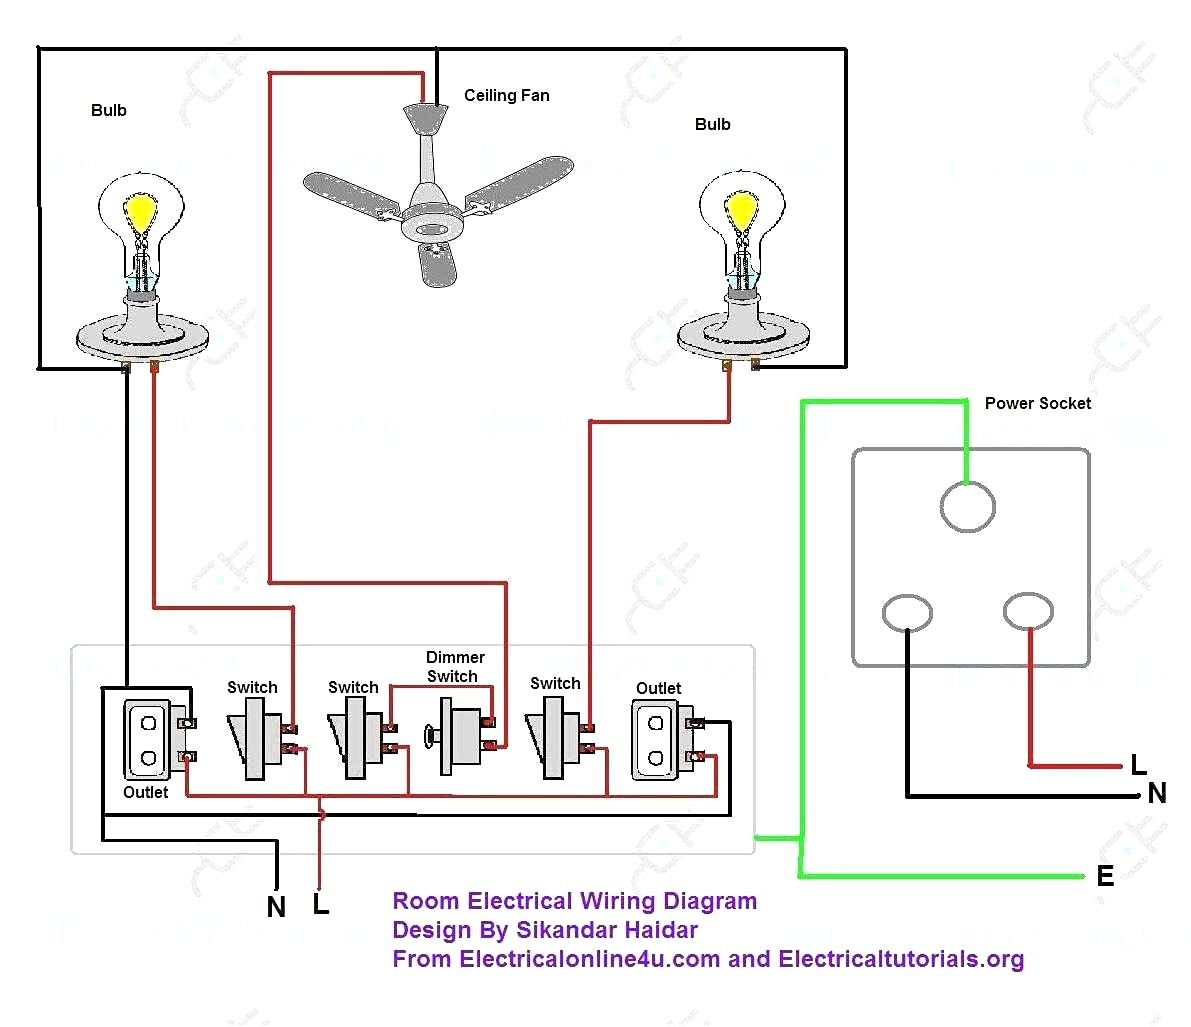 small resolution of image result for house electrical wiring plan